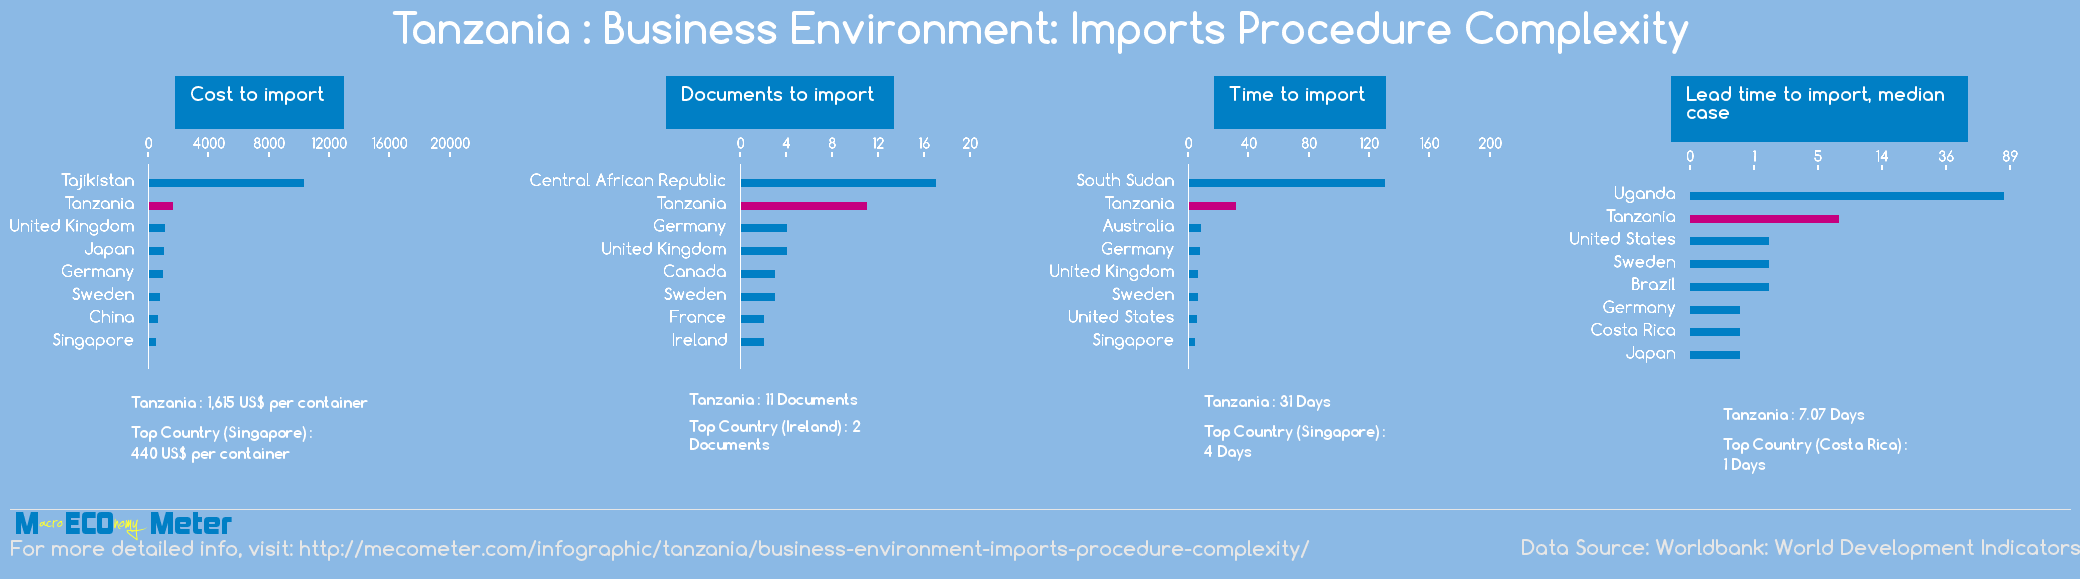 Tanzania : Business Environment: Imports Procedure Complexity